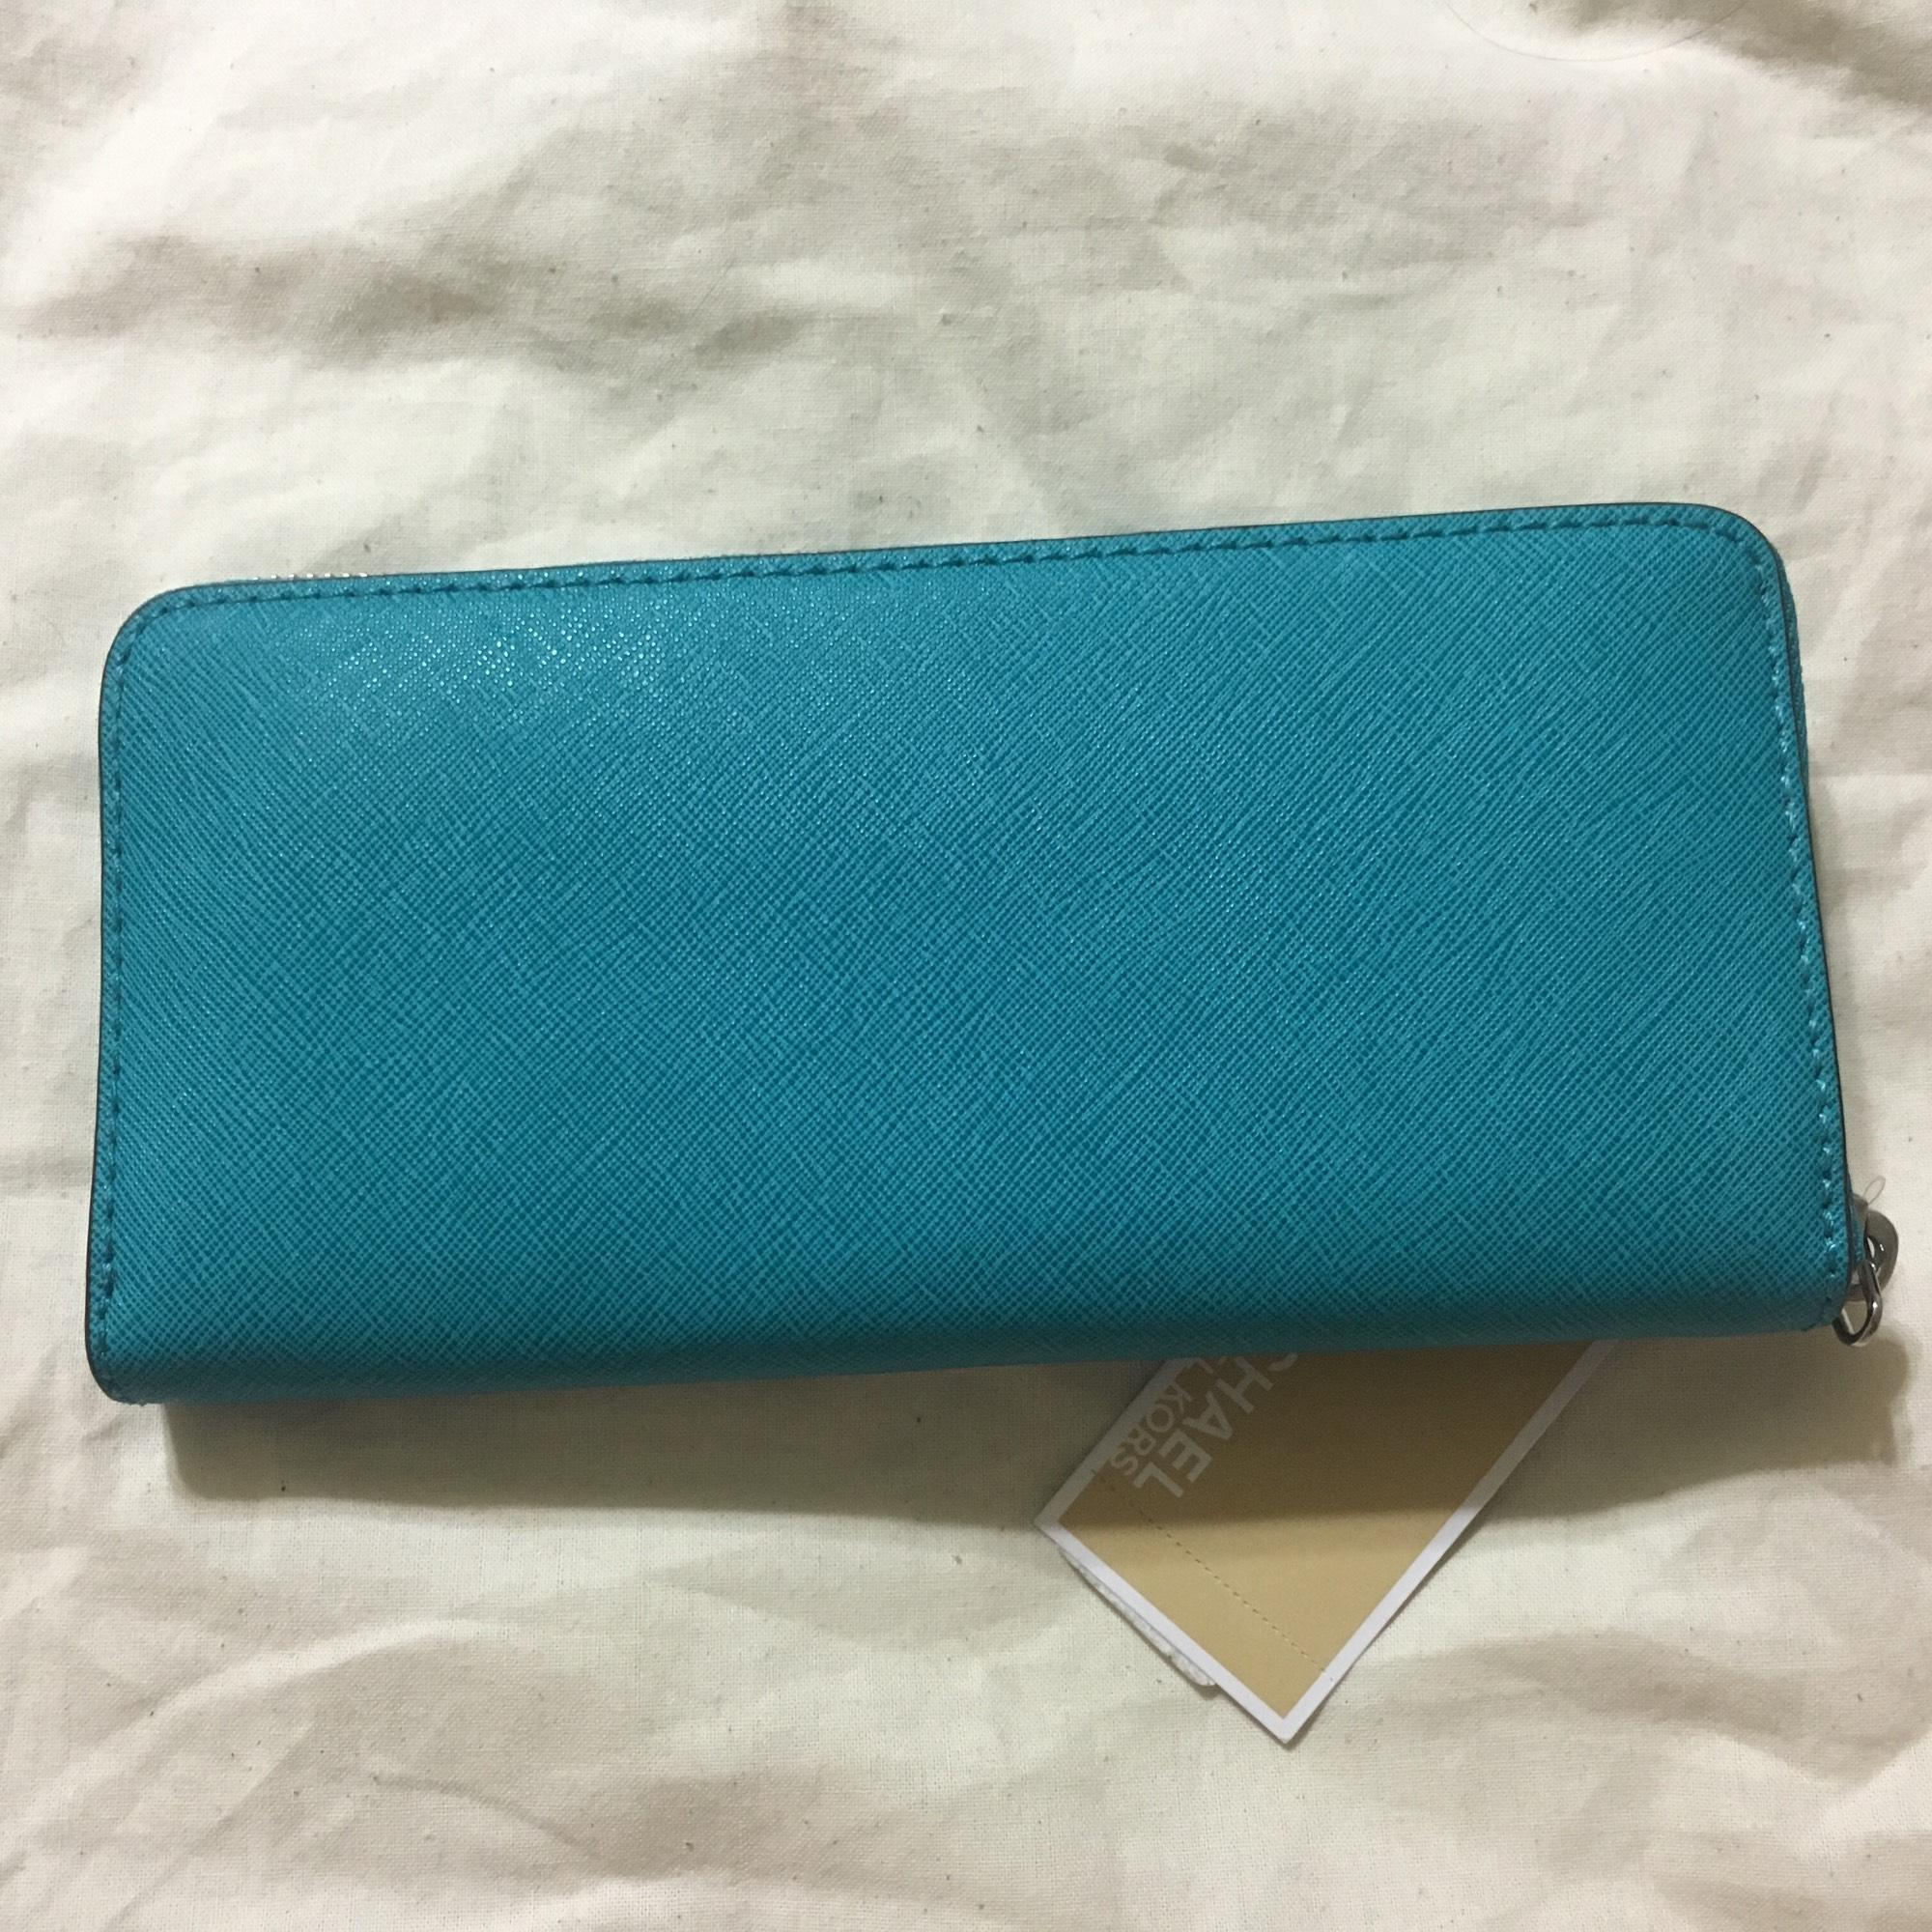 cca83f69bc88 12345678 uk michael kors jet set travel zip continental tile blue teal  saffiano leather wallet.